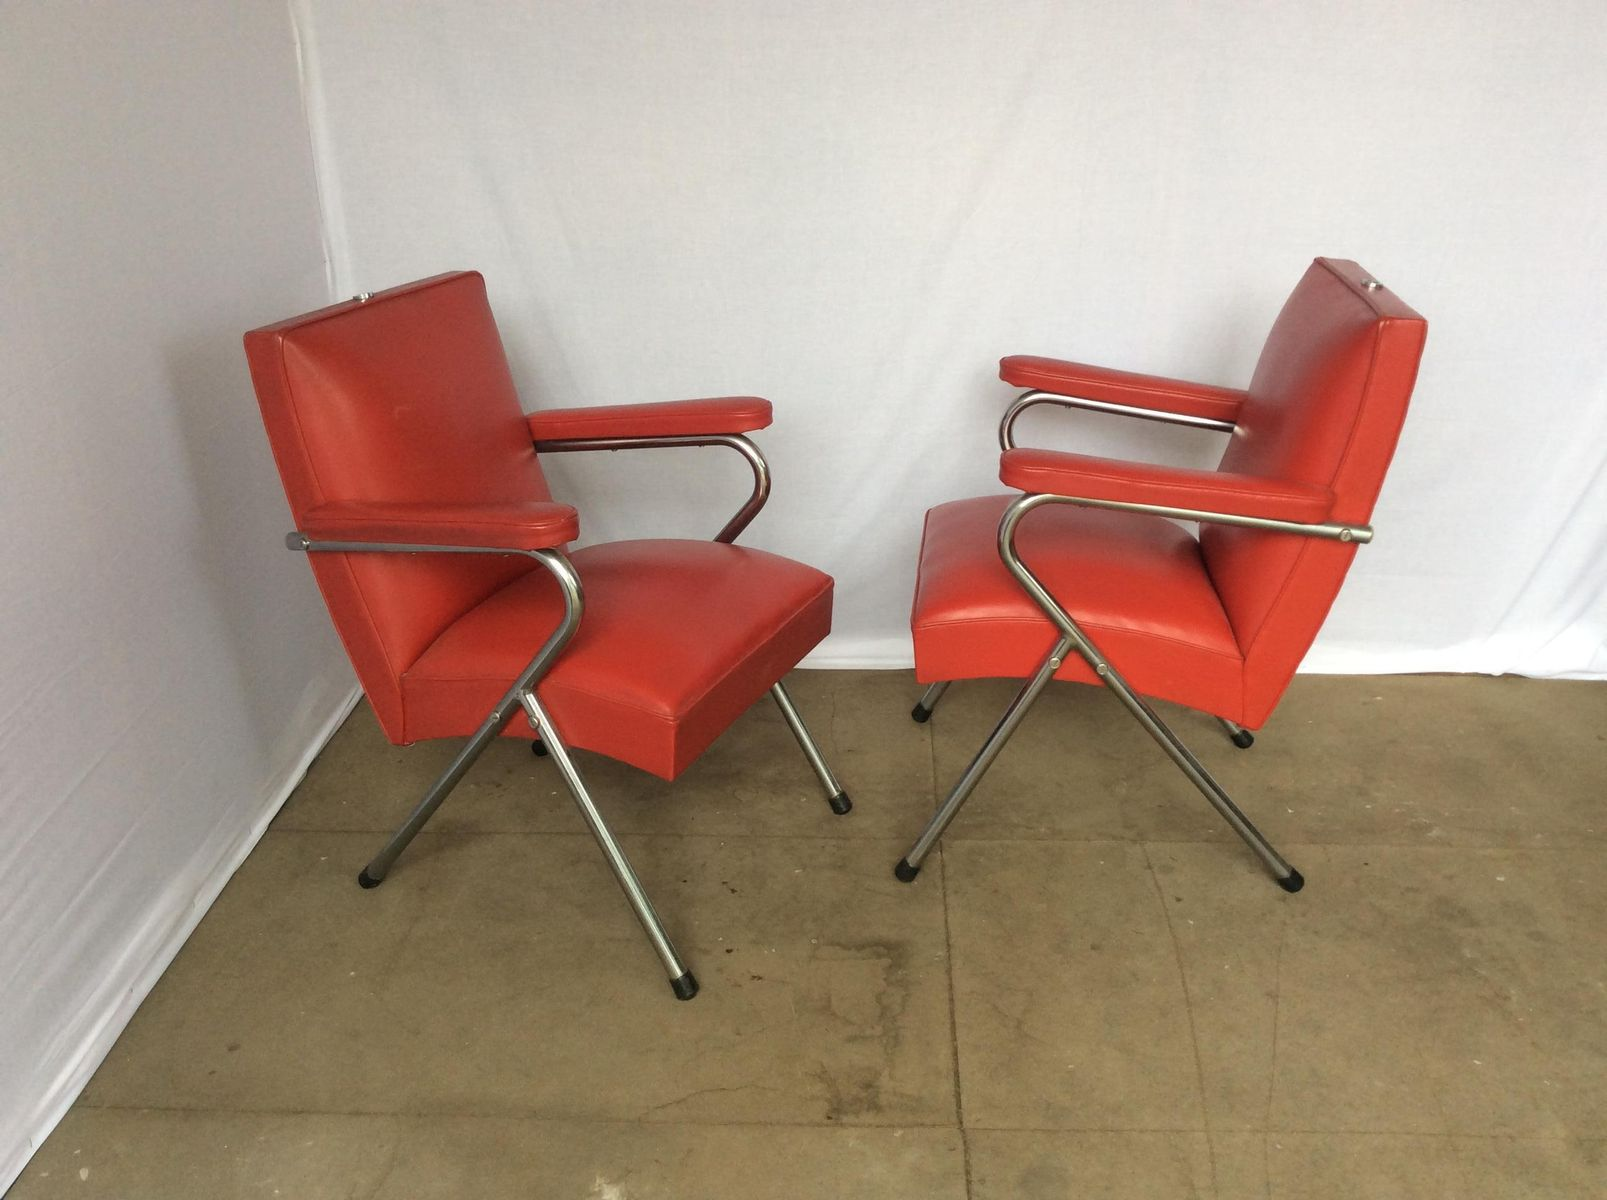 Chrome and Red Vinyl Salon Chairs 1960s Set of 2 for sale at Pamono